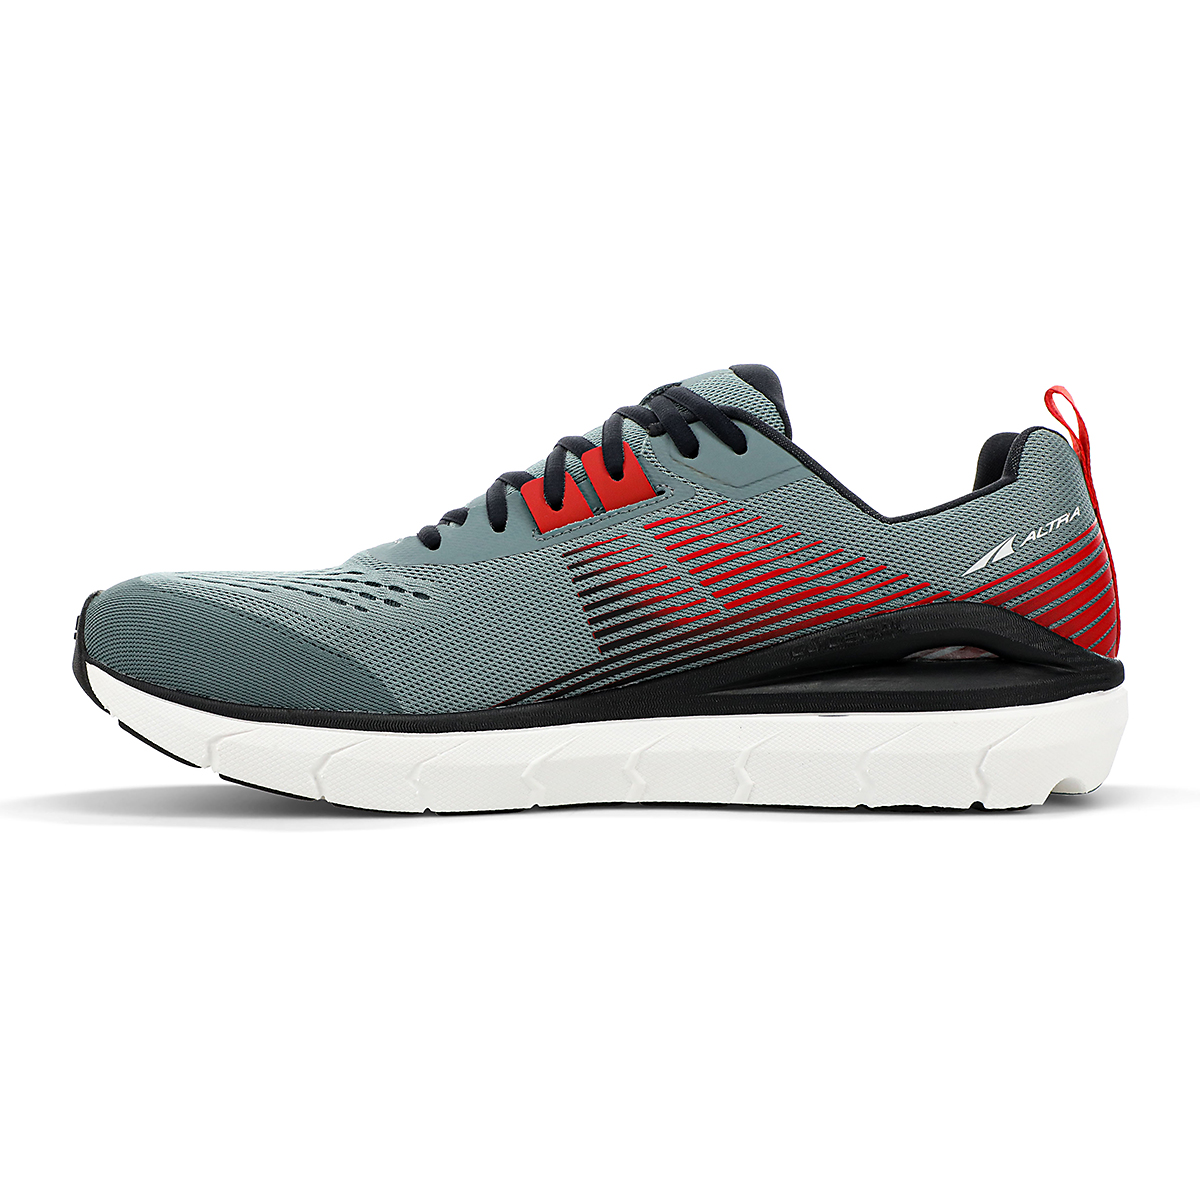 Men's Altra Provision 5 Running Shoe - Color: Light Gray/Red - Size: 7 - Width: Regular, Light Gray/Red, large, image 2